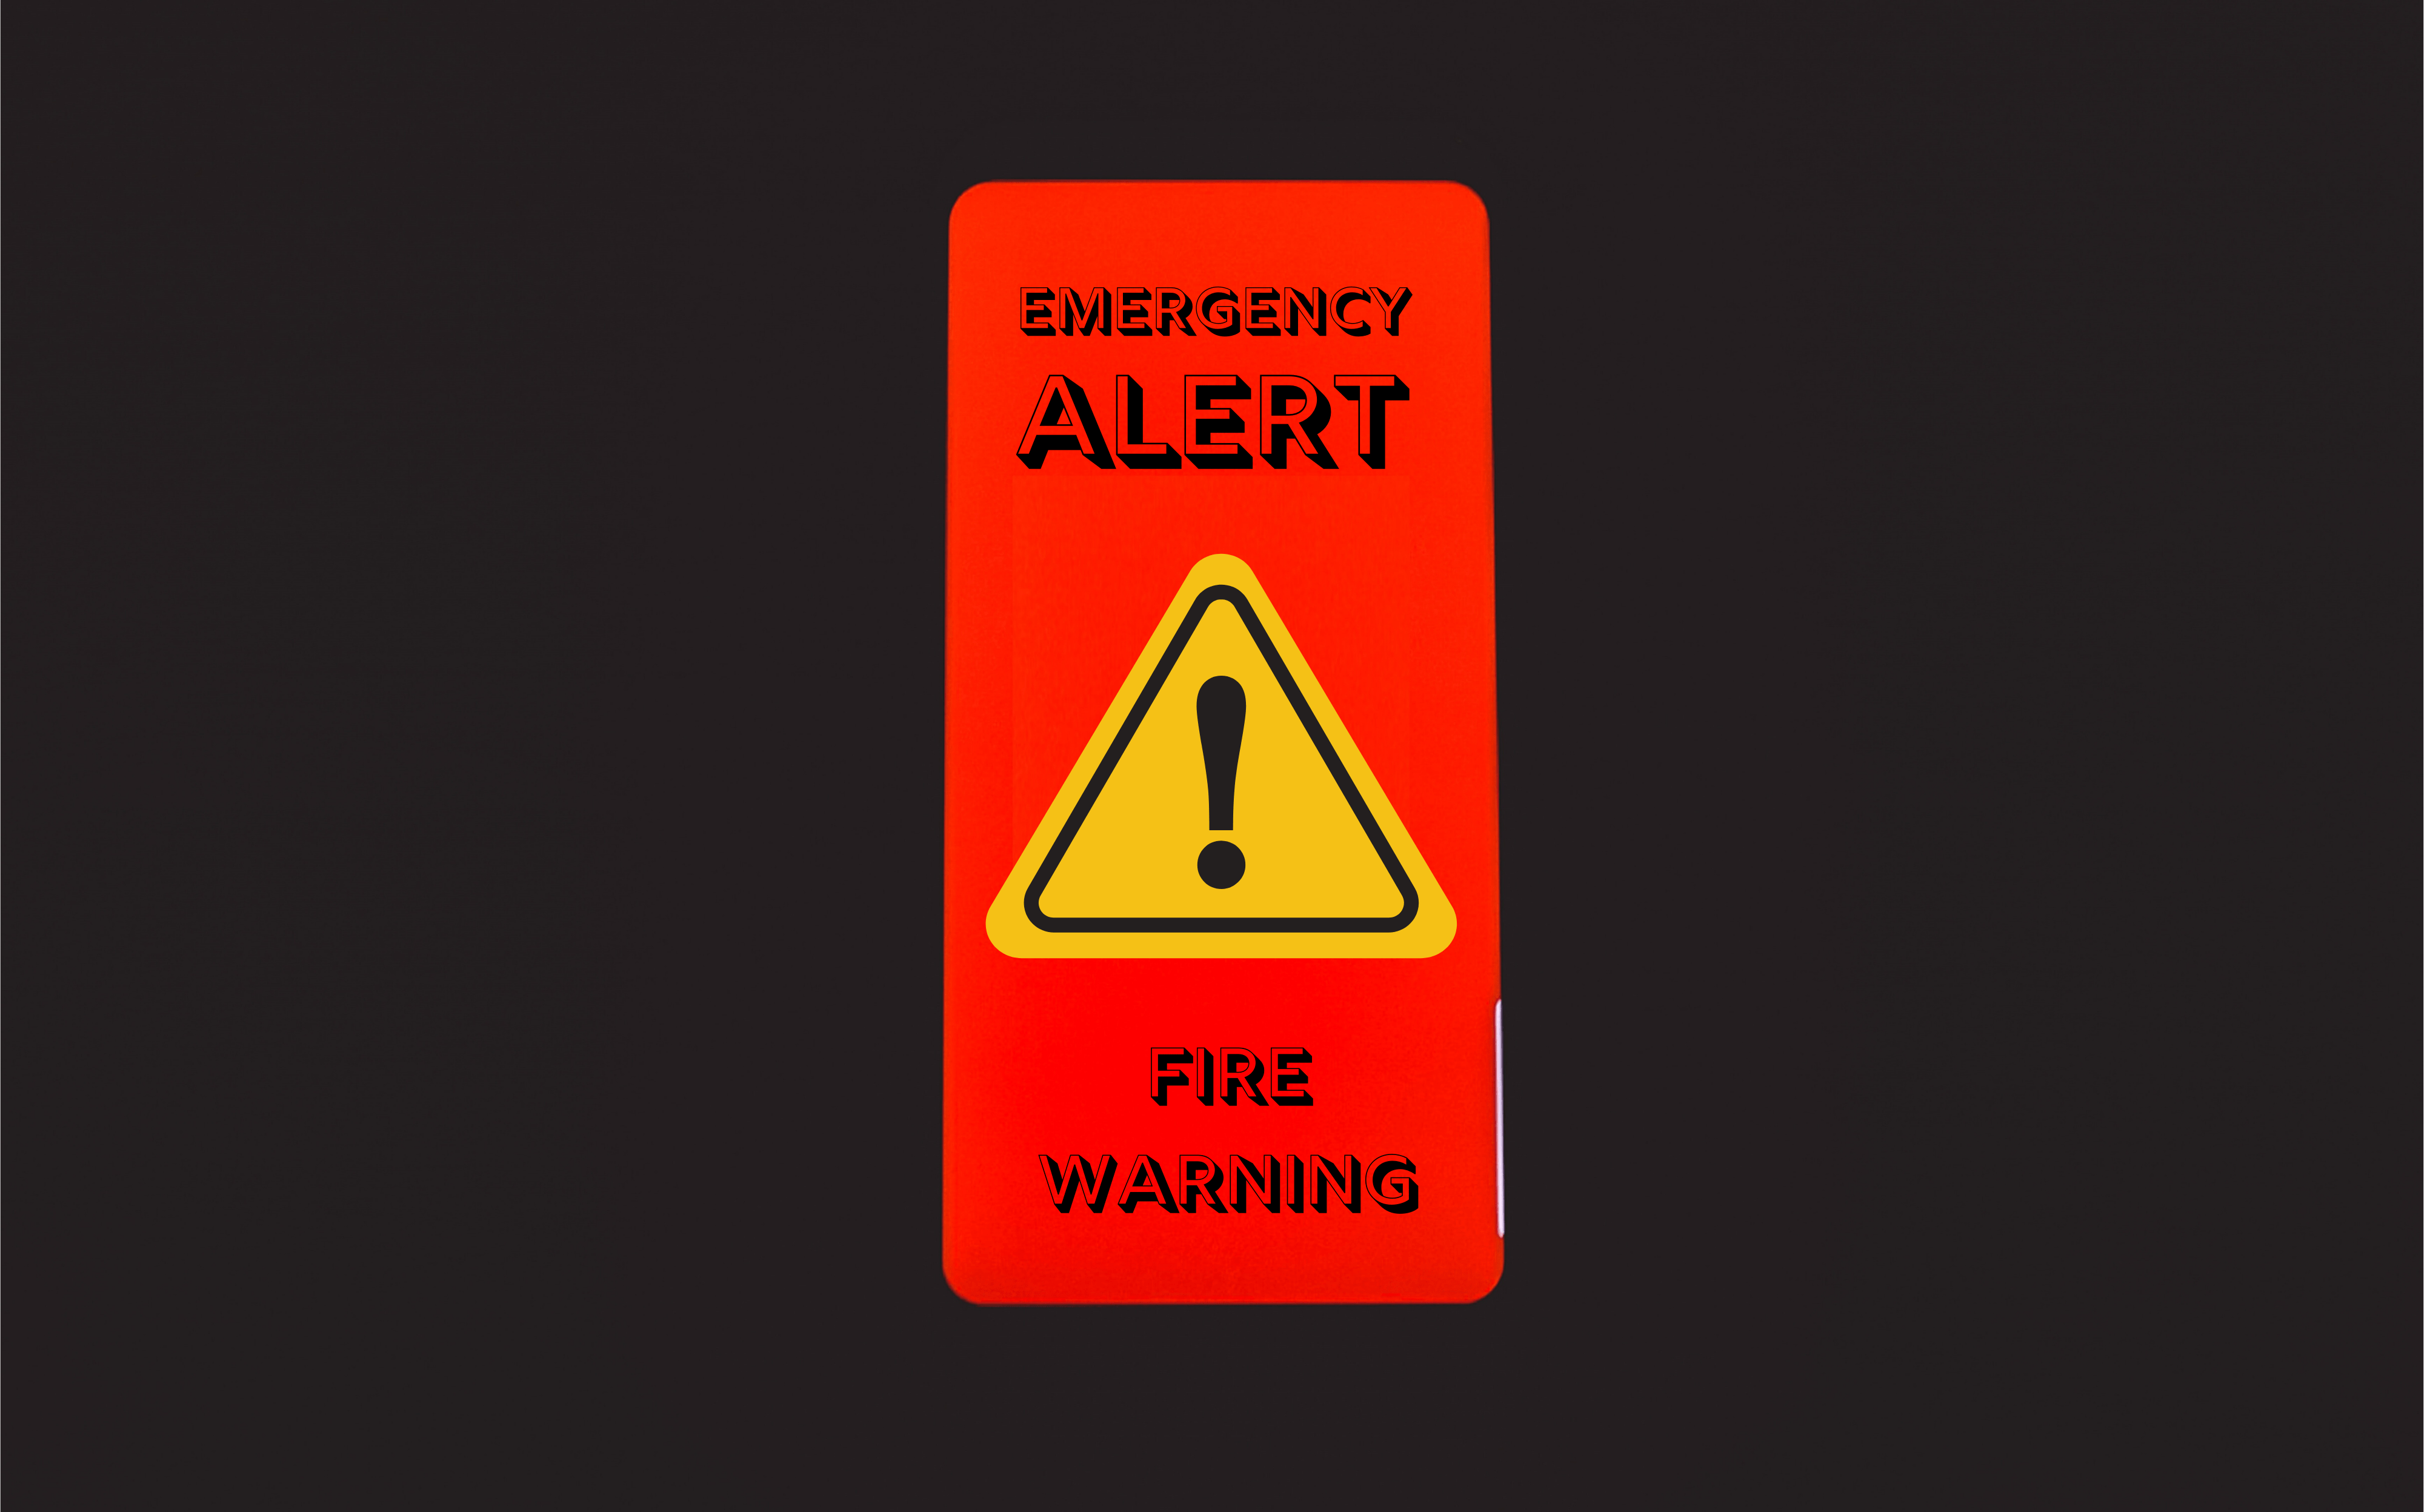 What to Do When You Receive a Fire Emergency Alert - Fraker Fire